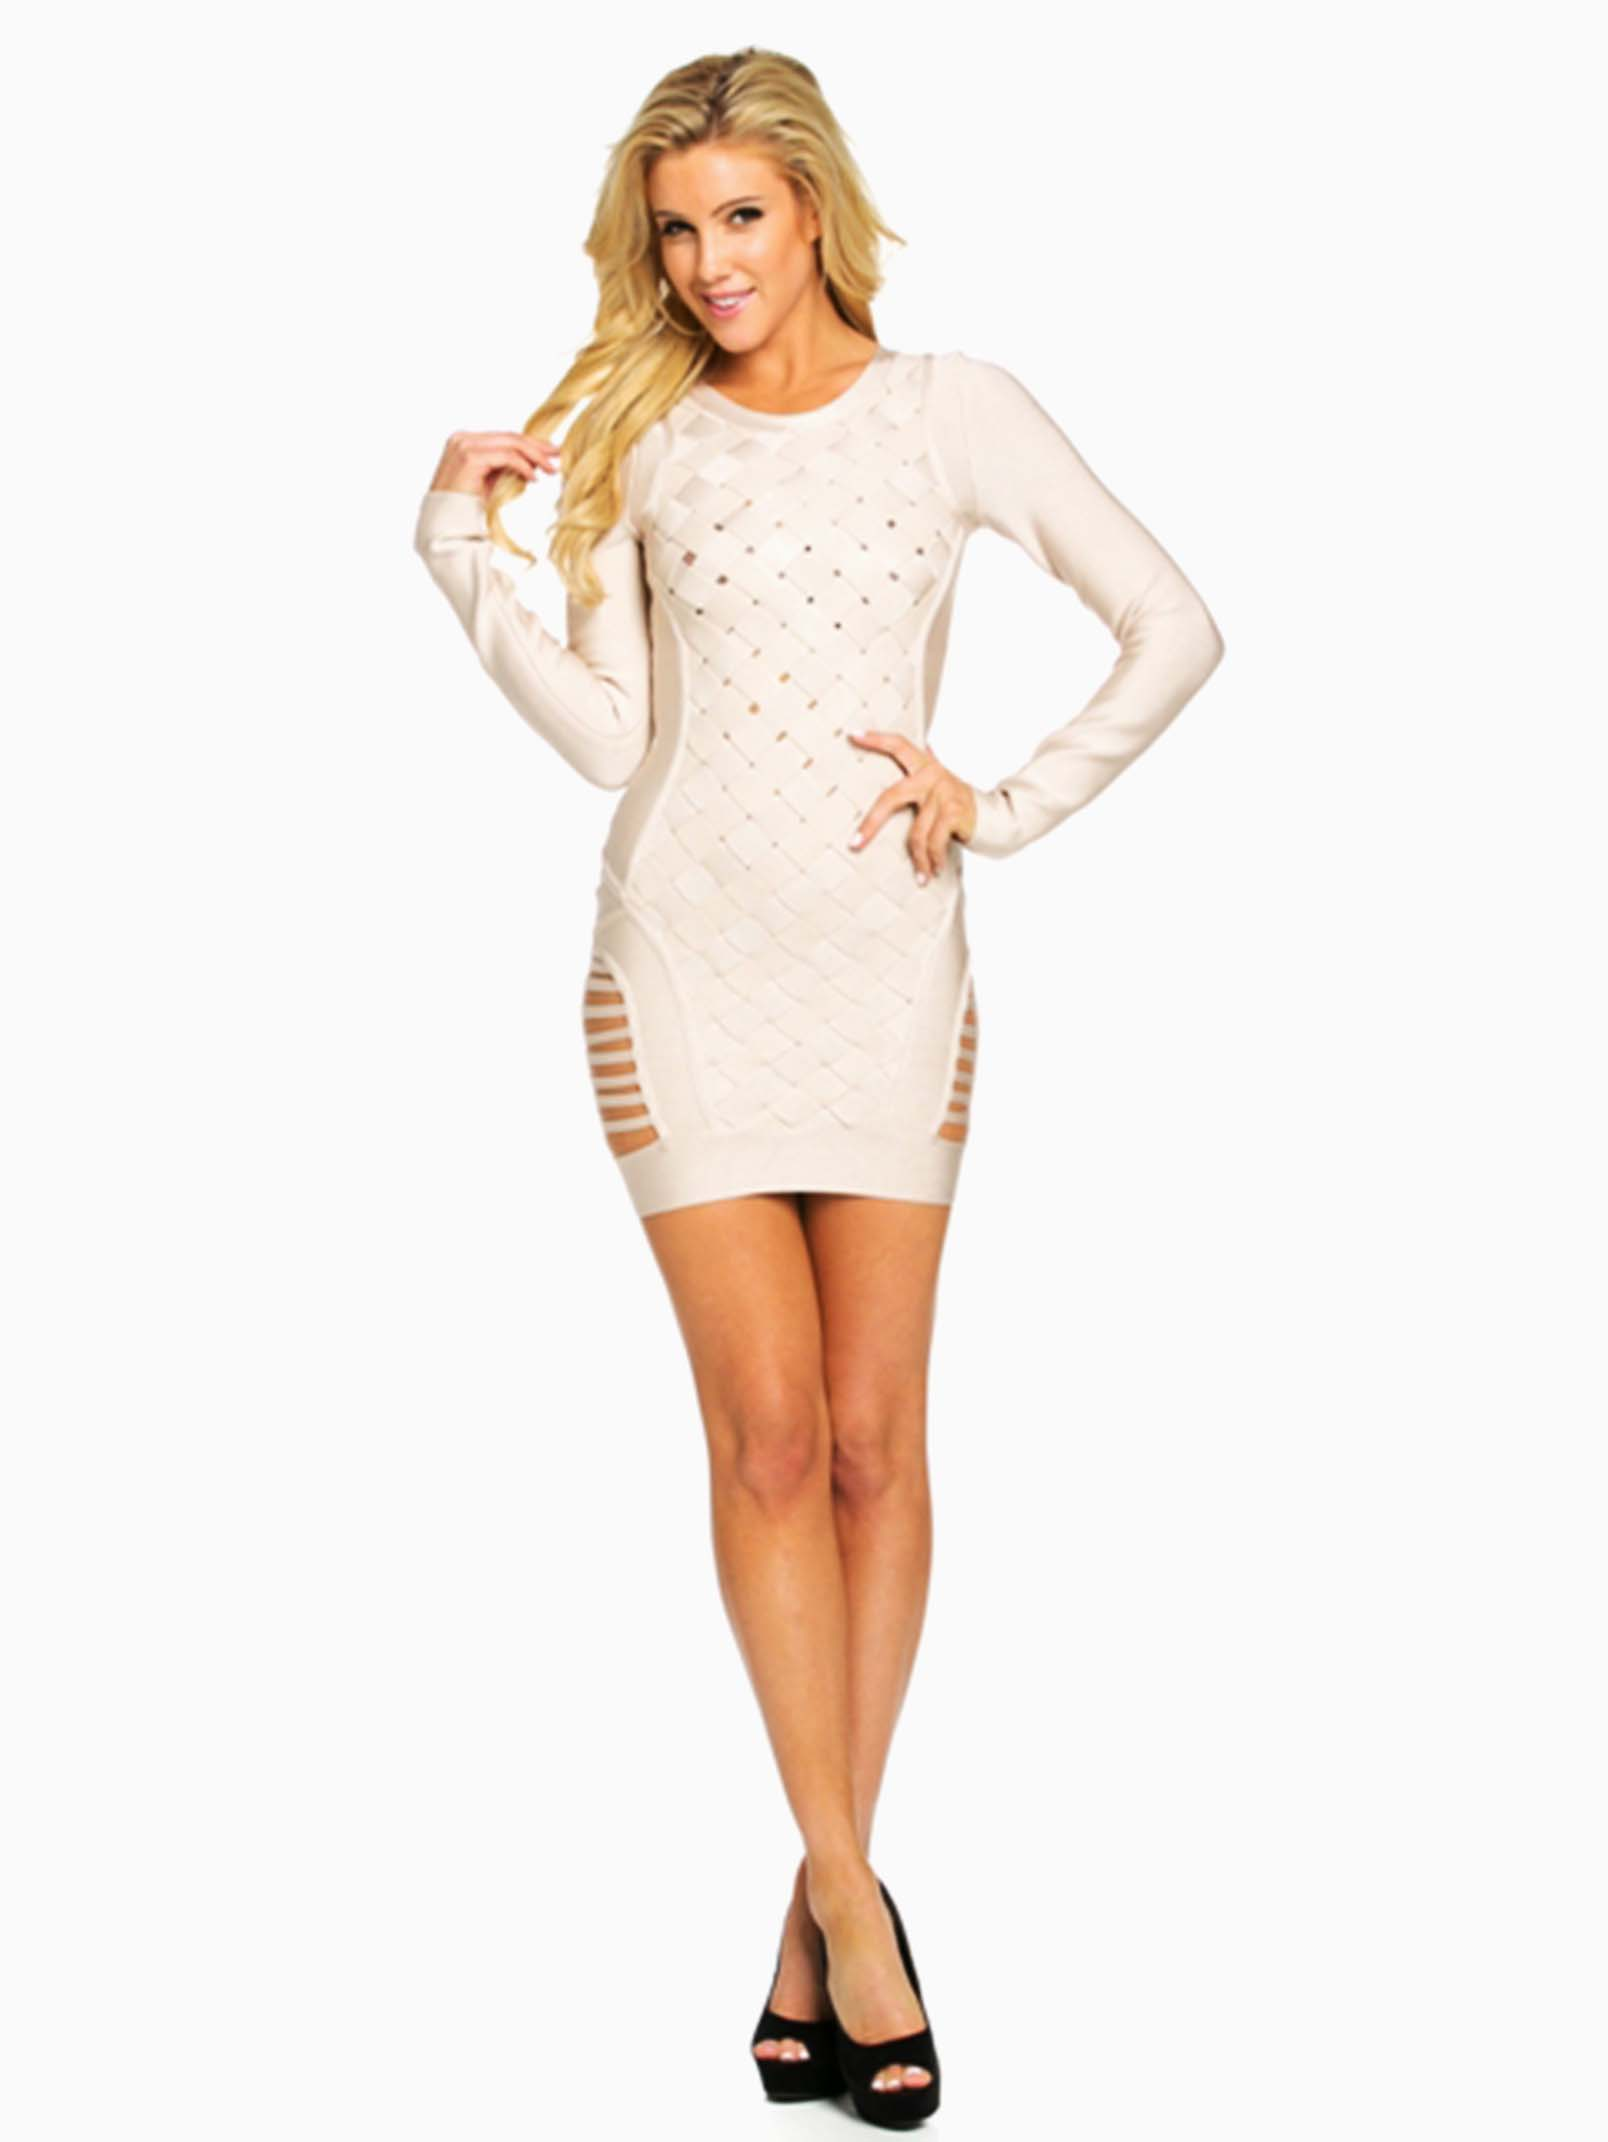 Hera Collection Pink Long Sleeve Bandage Mini Dress - ModishOnline.com